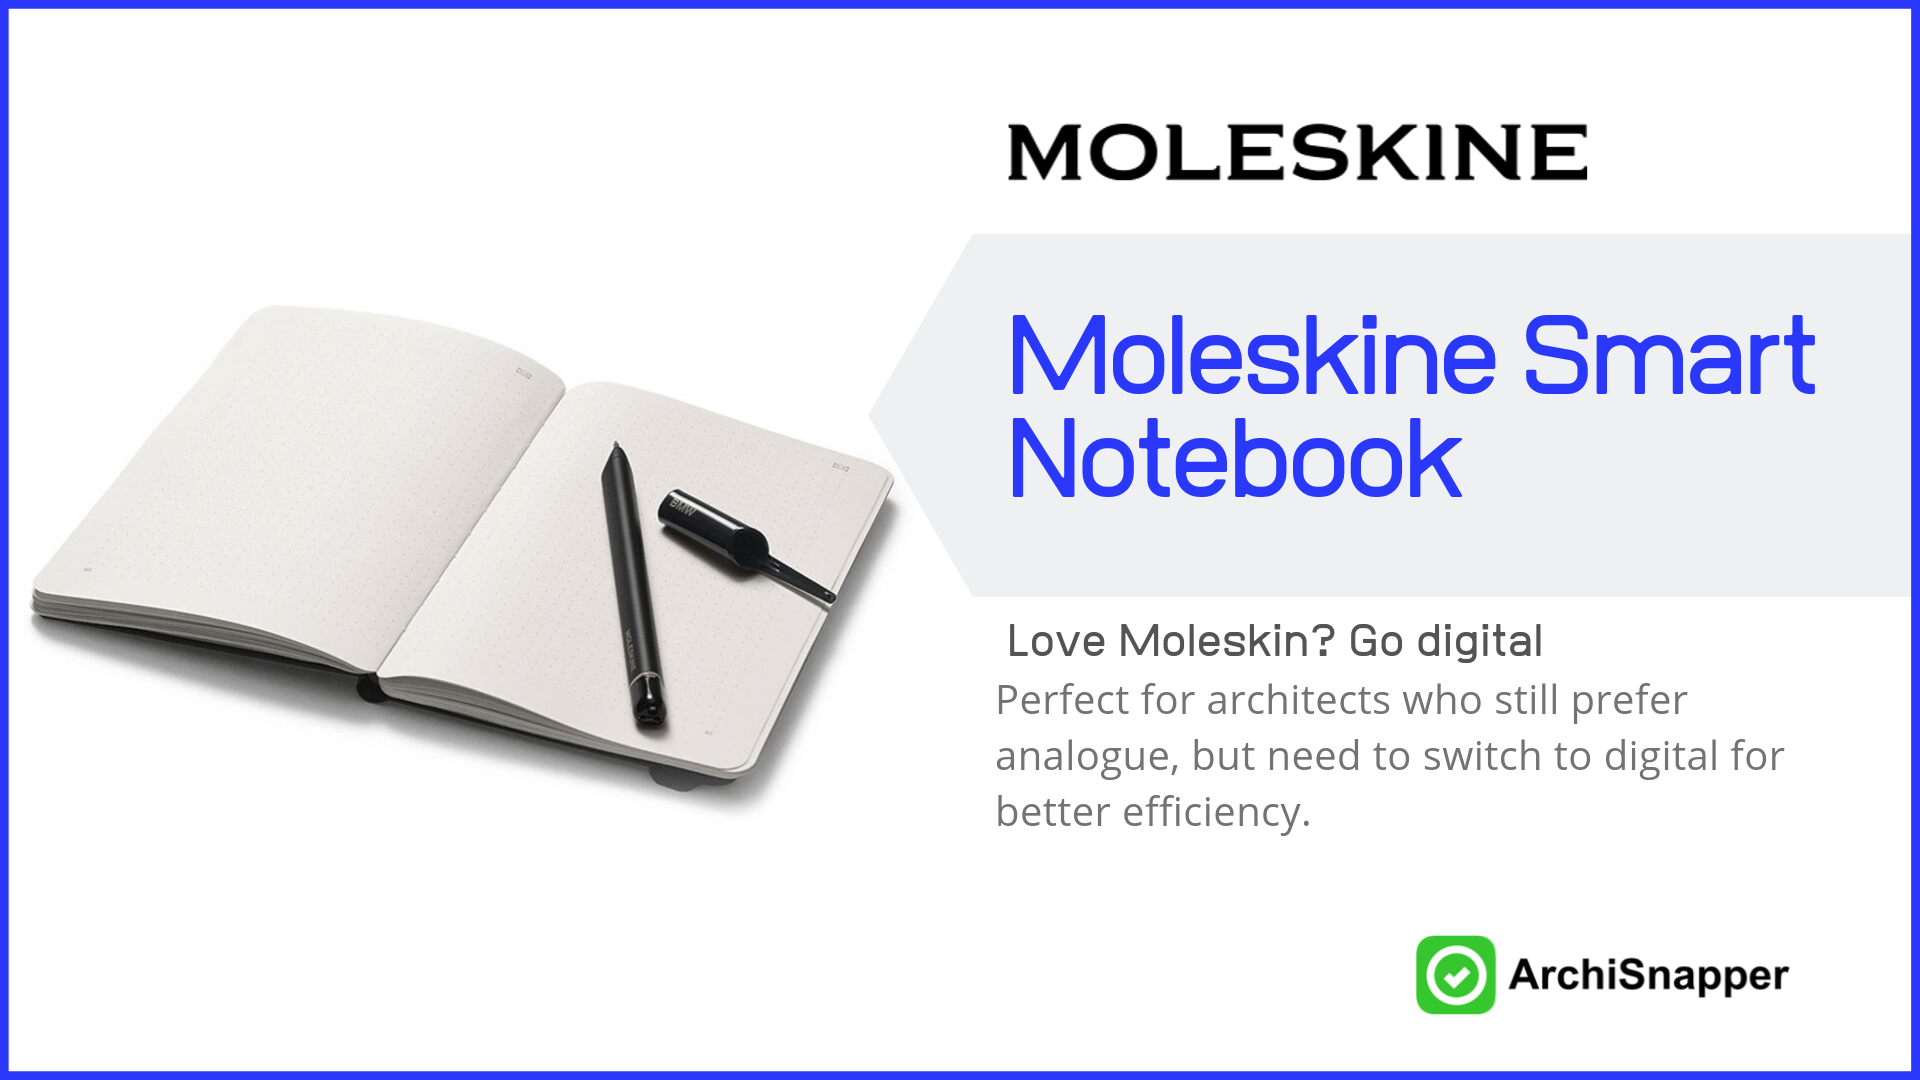 Moleskine Smart Notebook | List of the 15 must-have tech tools and accessories ideal for architects presented by Archisnapper